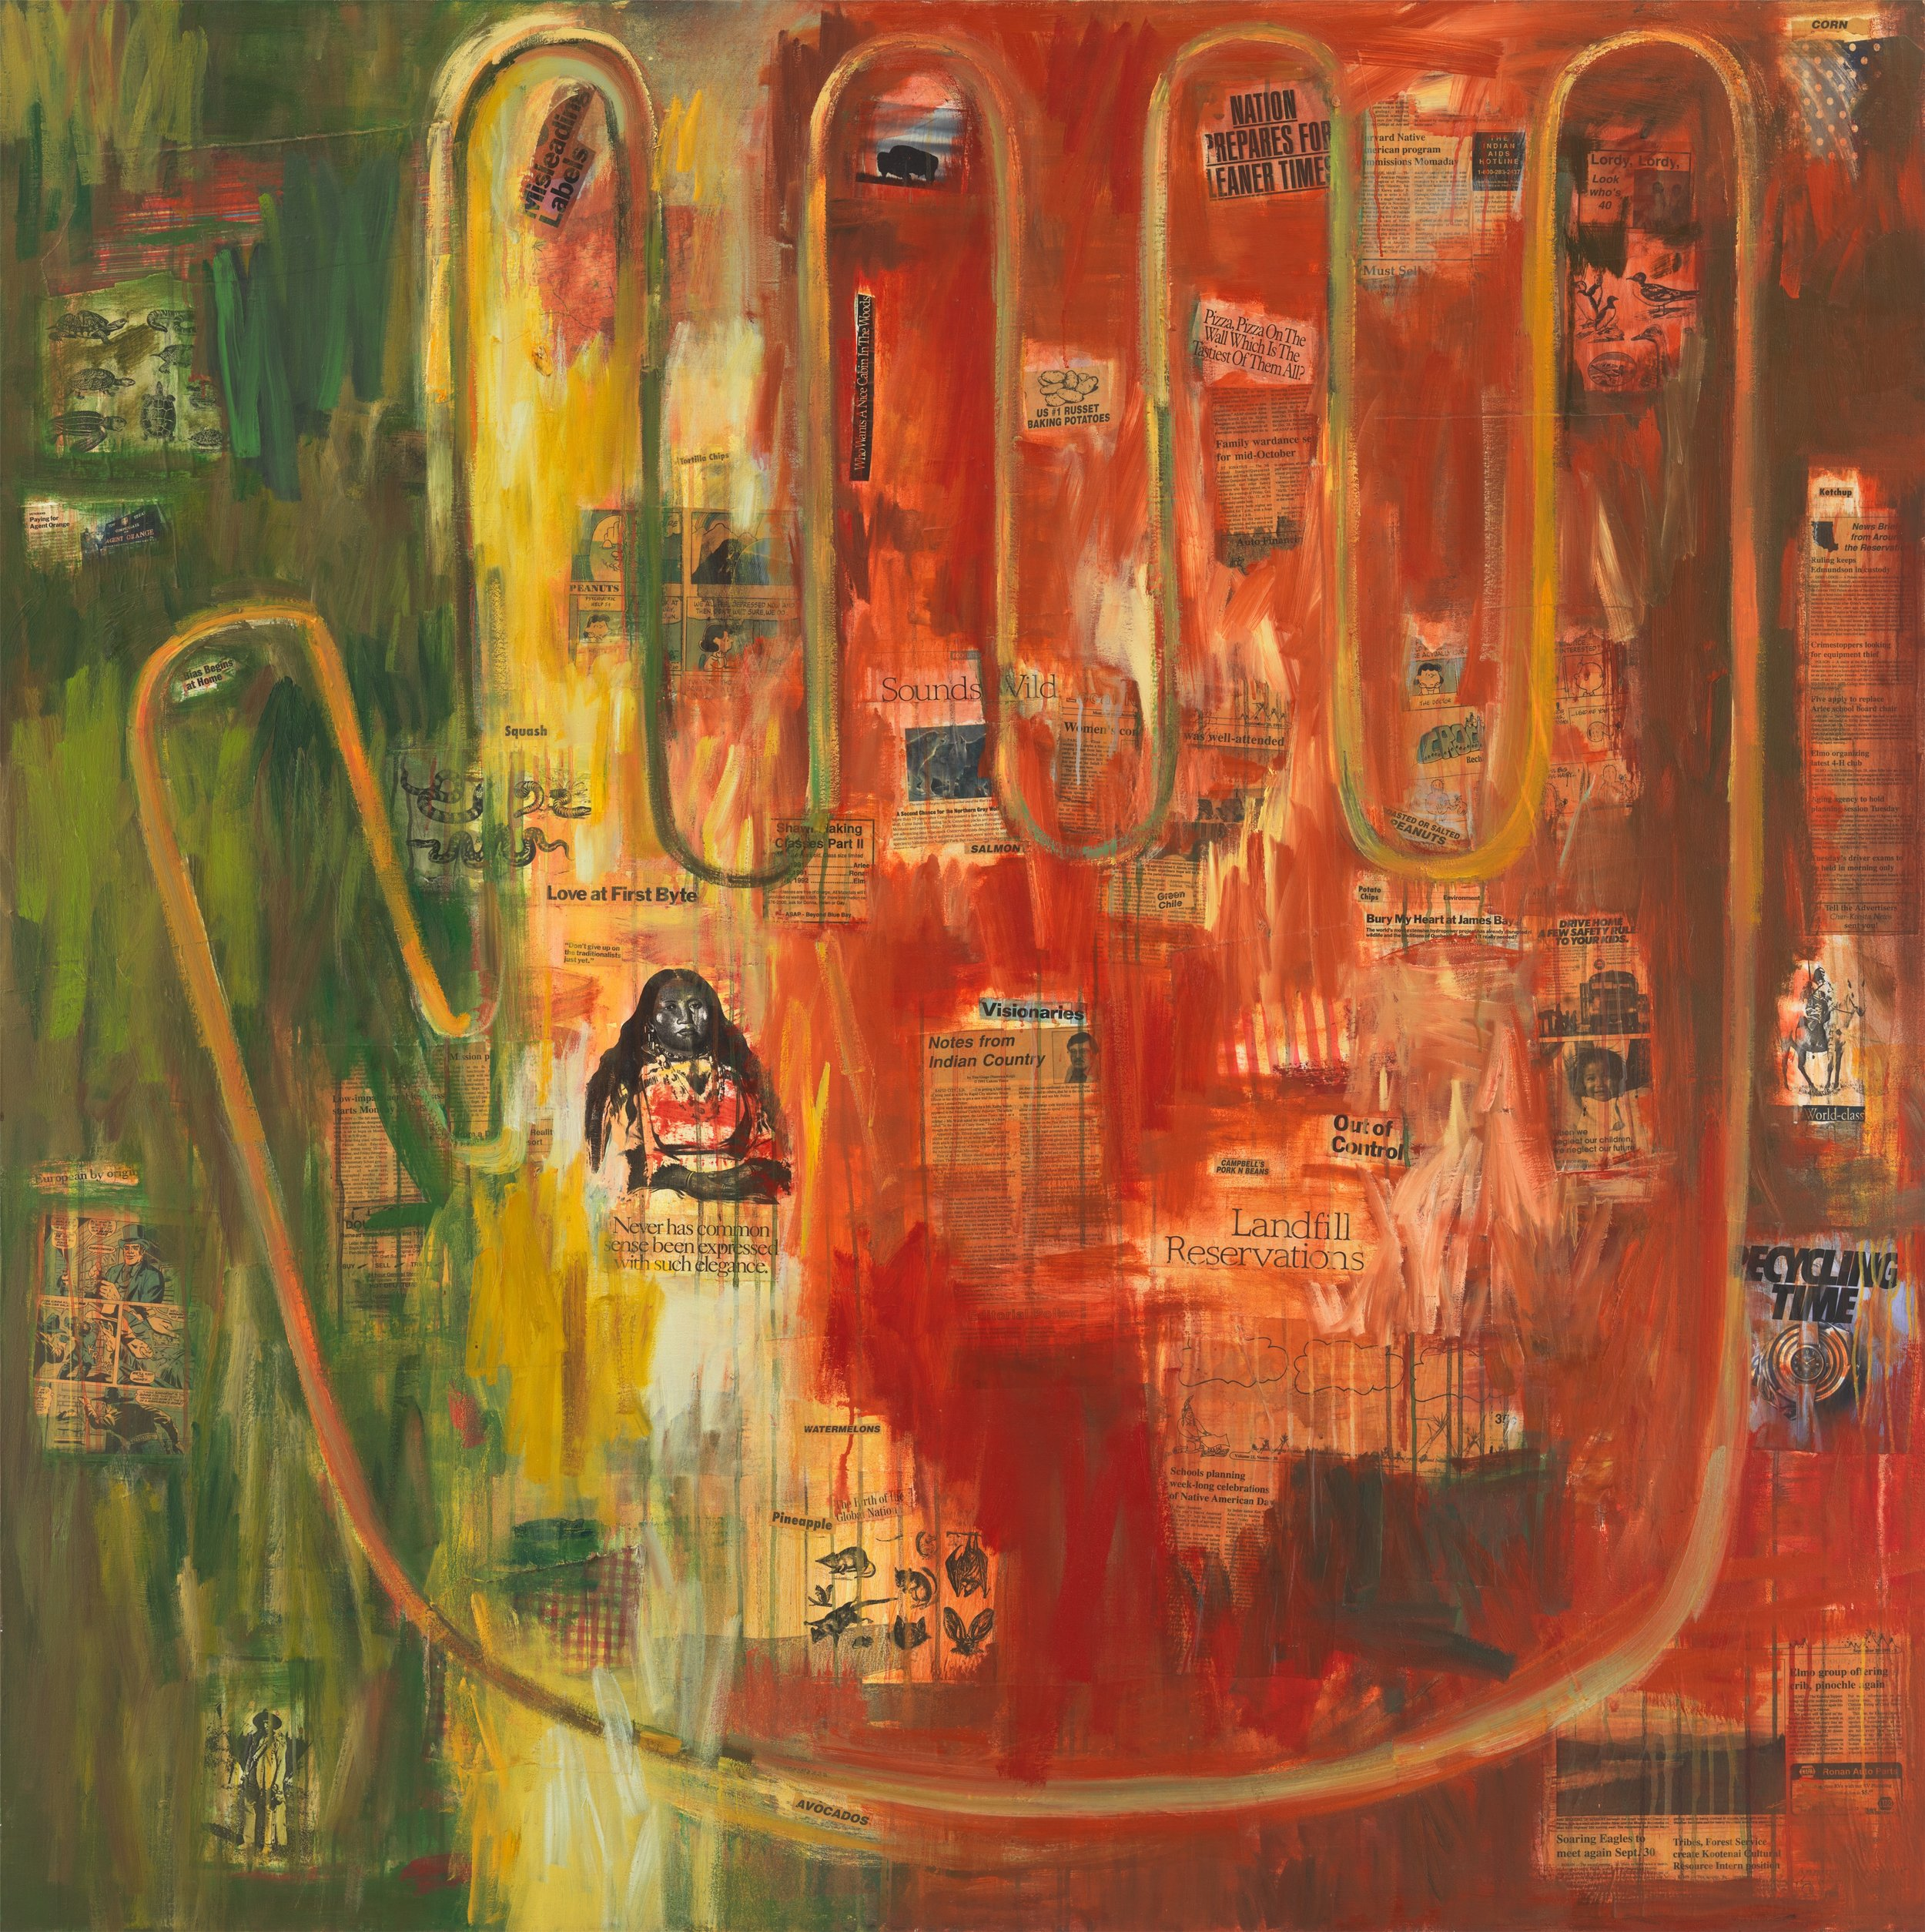 Indian Hand, 1992